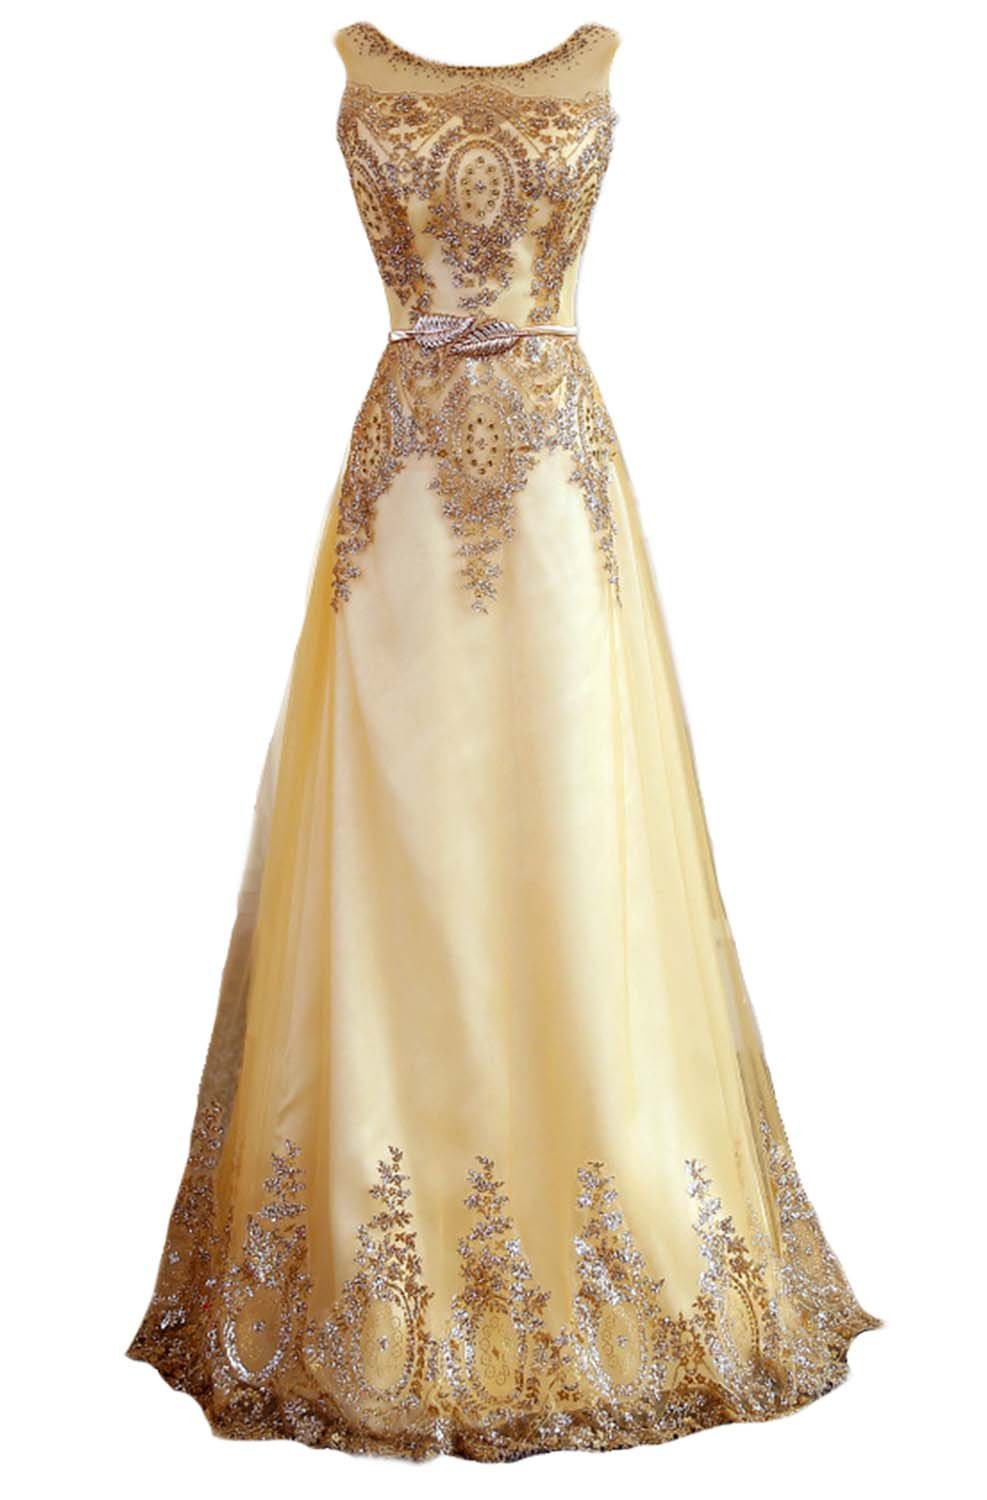 Fanhao Women's Gilted Plume Belt Lace-up Gold Long Prom Bridesmaid Dress,L